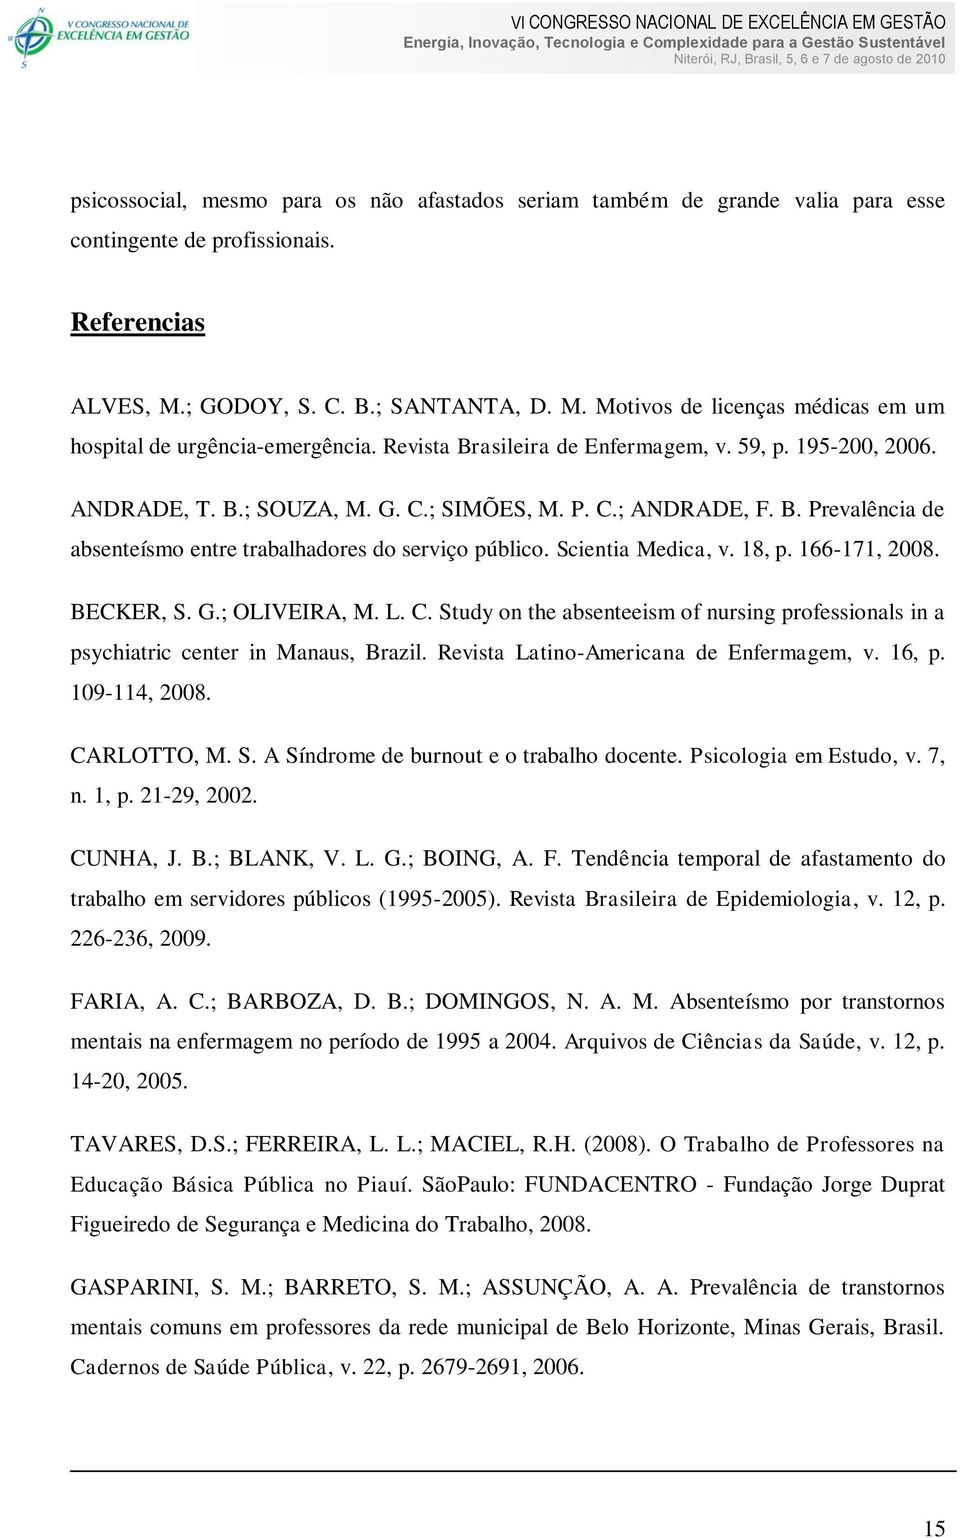 Scientia Medica, v. 18, p. 166-171, 2008. BECKER, S. G.; OLIVEIRA, M. L. C. Study on the absenteeism of nursing professionals in a psychiatric center in Manaus, Brazil.